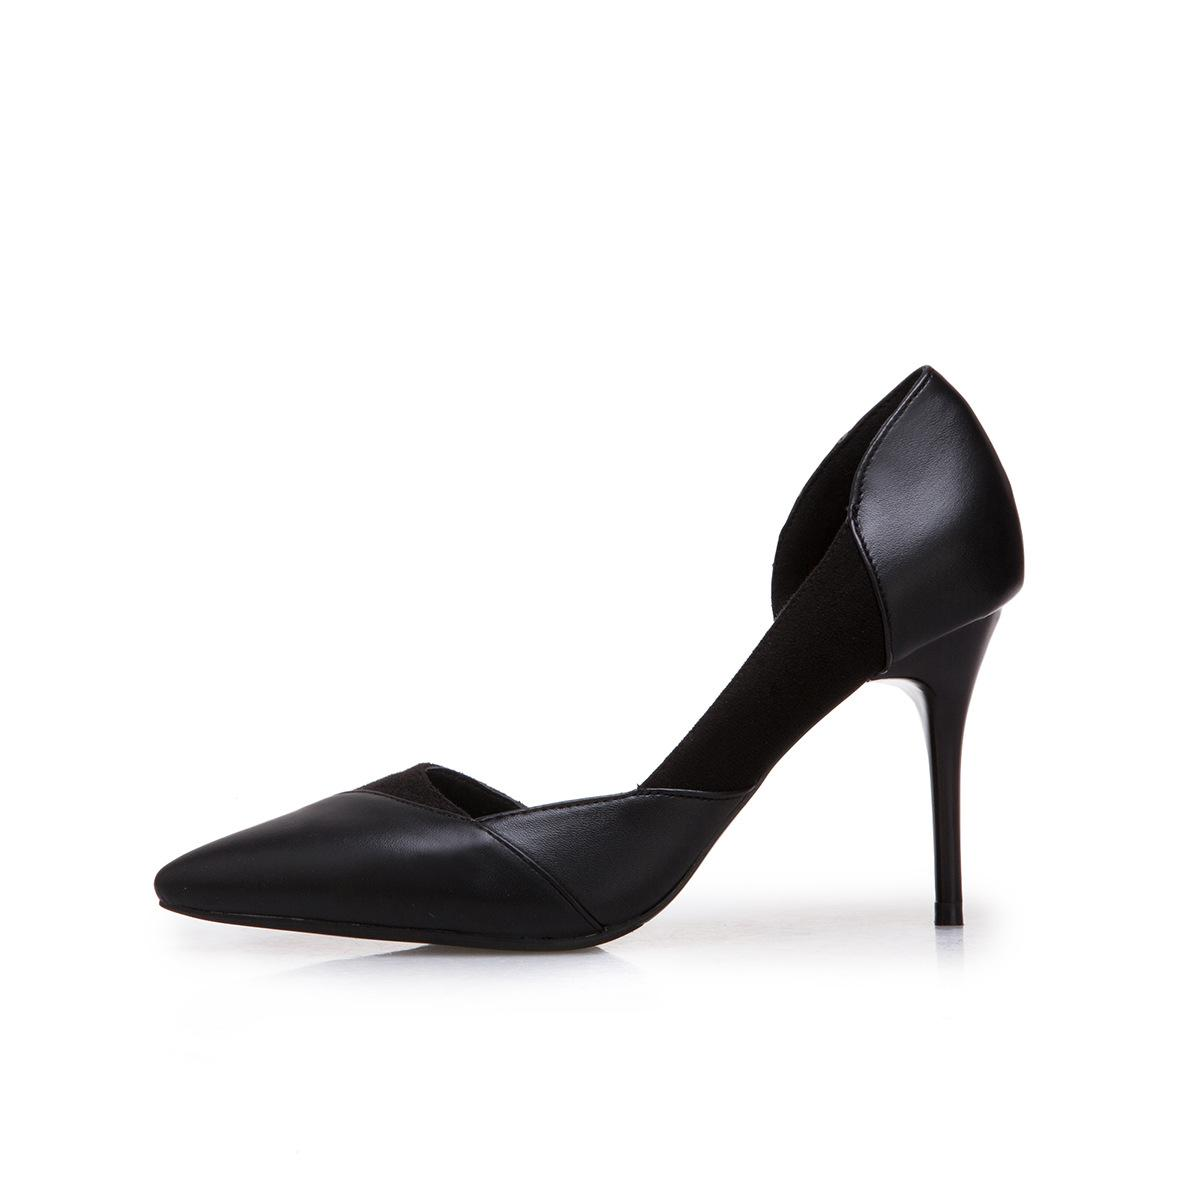 931f08c9af Designer Dress Shoes Sexy Women Thin High Heels Pumps Black Bottom Classics  Pointed Toe Pumps High Heels Wedding Pumps Office Woman Navy Shoes Driving  Shoes ...